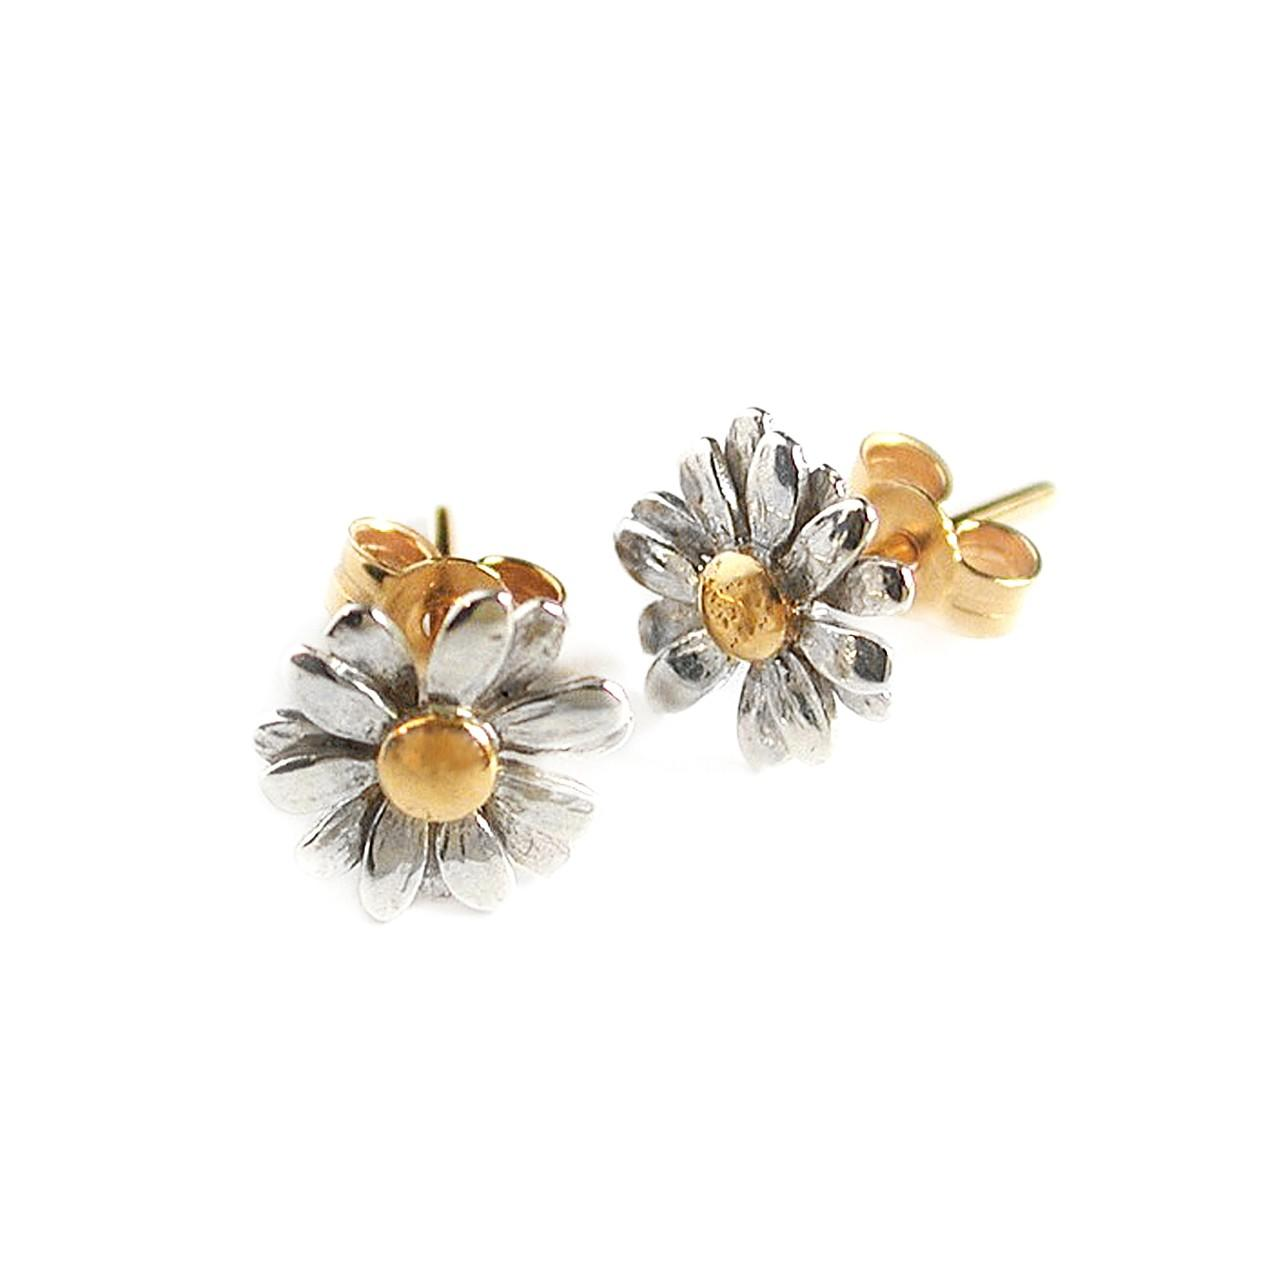 Solid silver and gold plated daisy stud earrings £114 (available in store only)